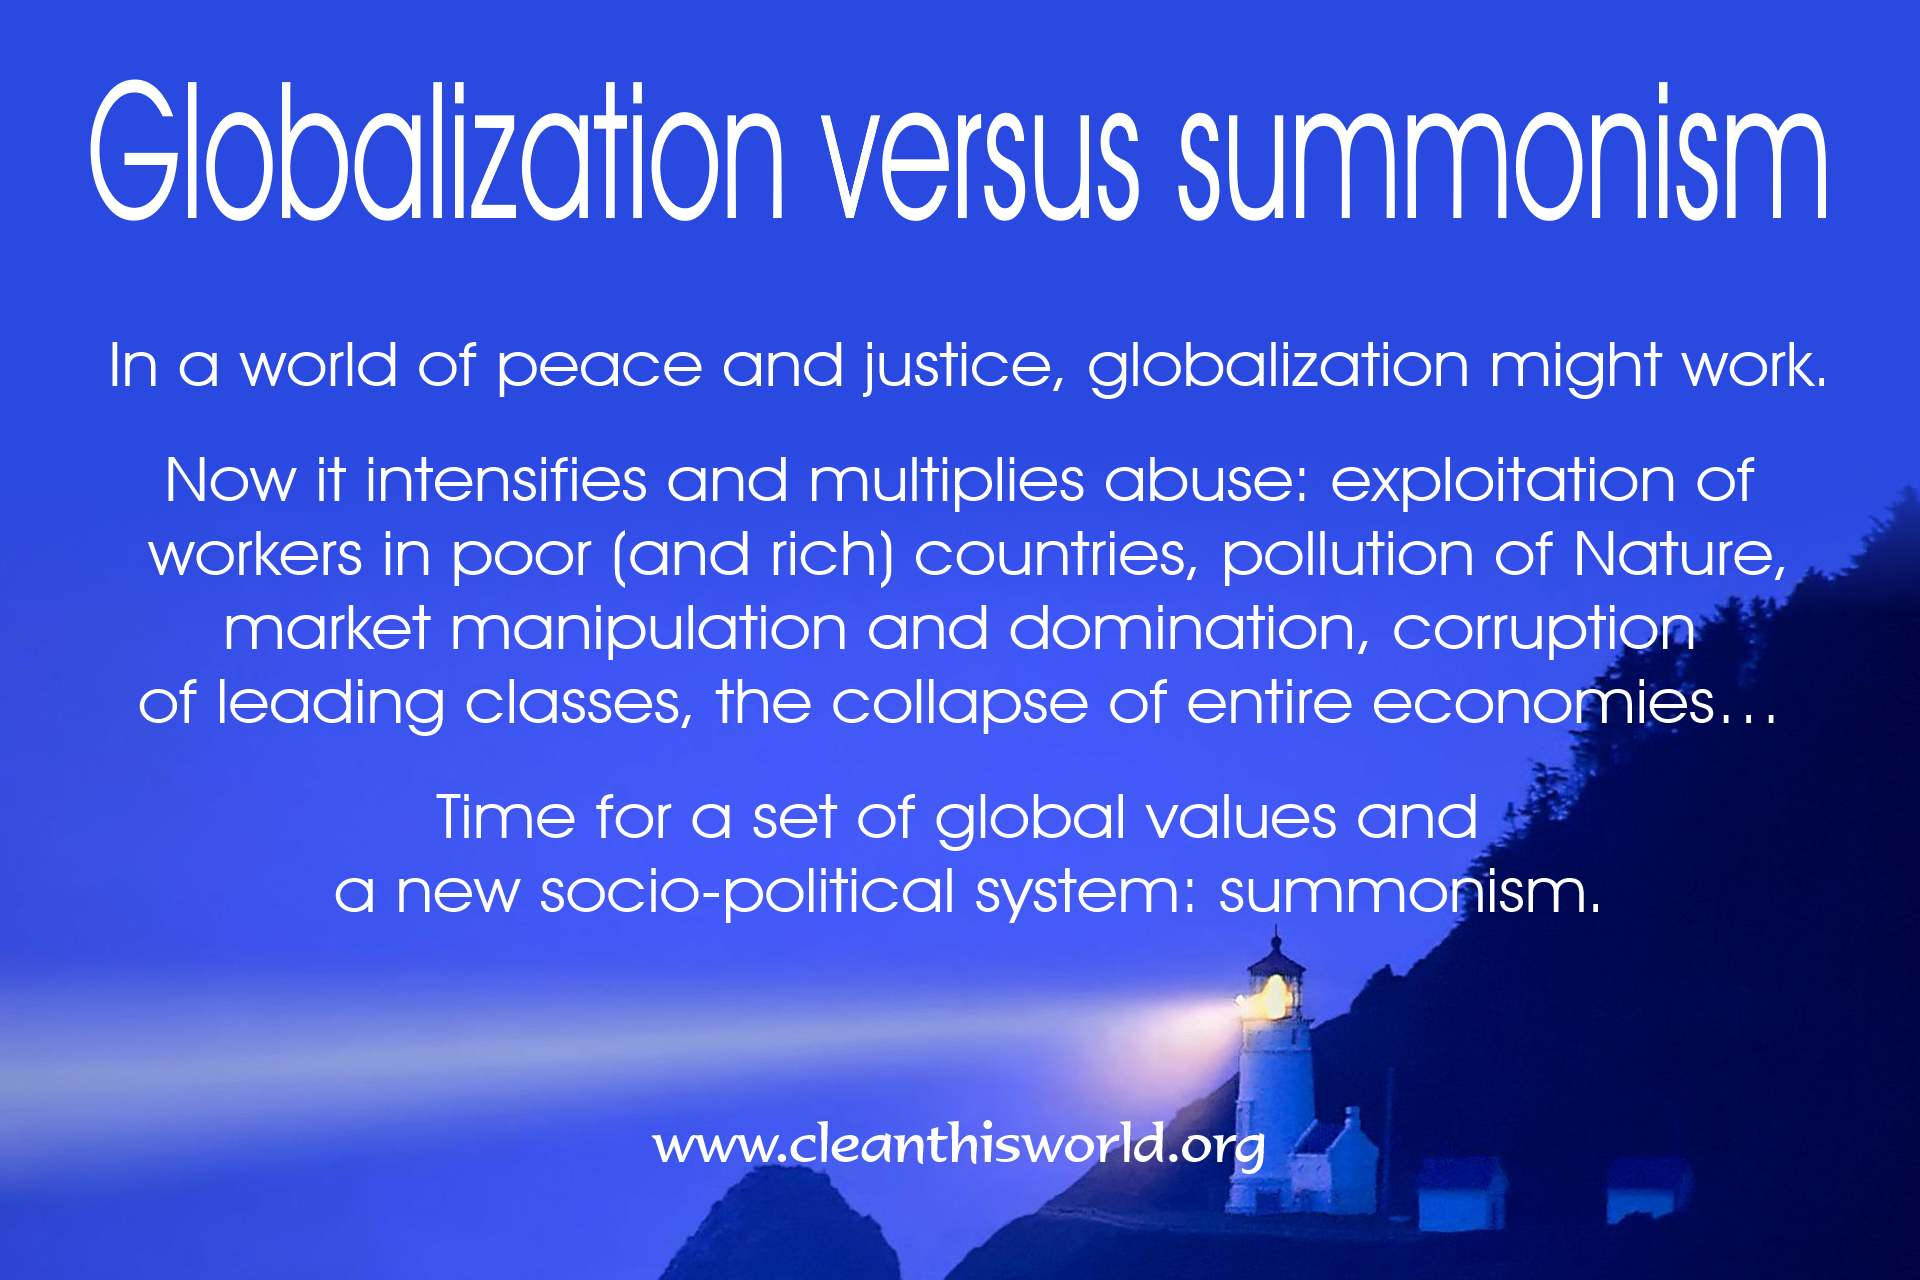 Globalization versus summonism